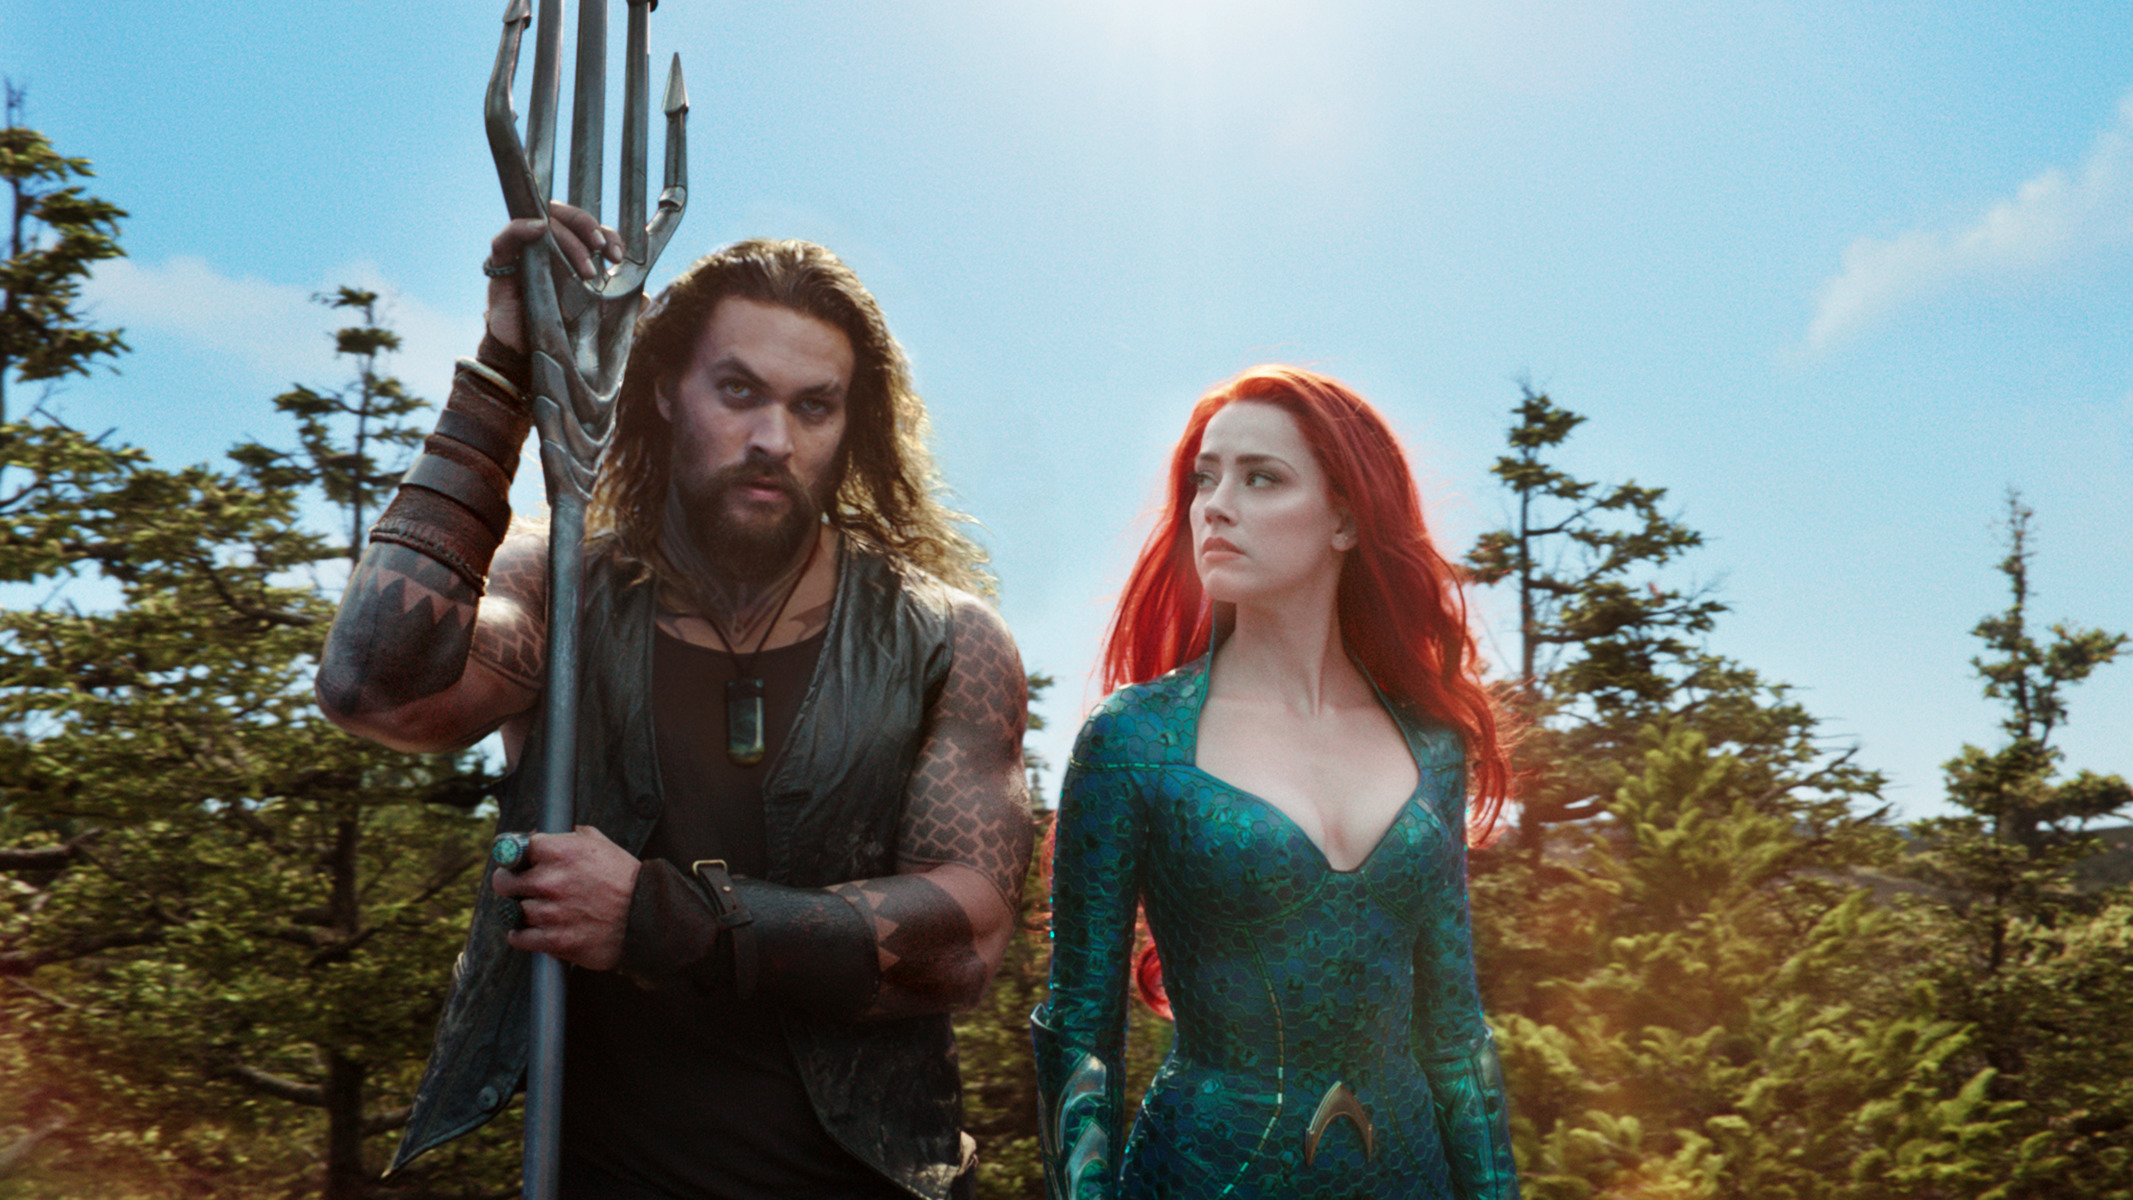 Johnny Depp Fans' Efforts To Have Amber Heard Axed From 'Aquaman 2' Carried No Water, Says Producer